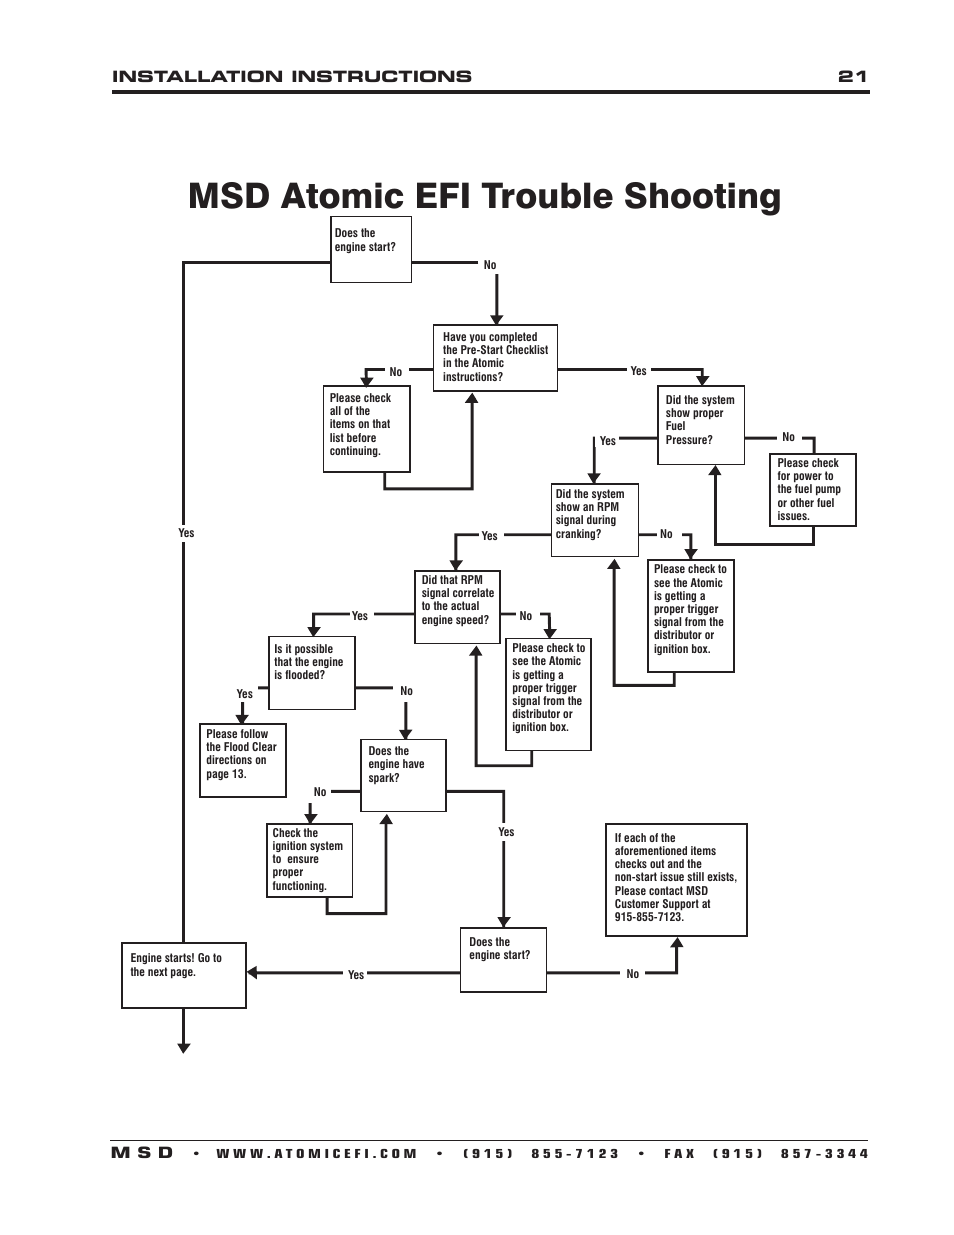 Msd atomic efi trouble shooting, Installation instructions